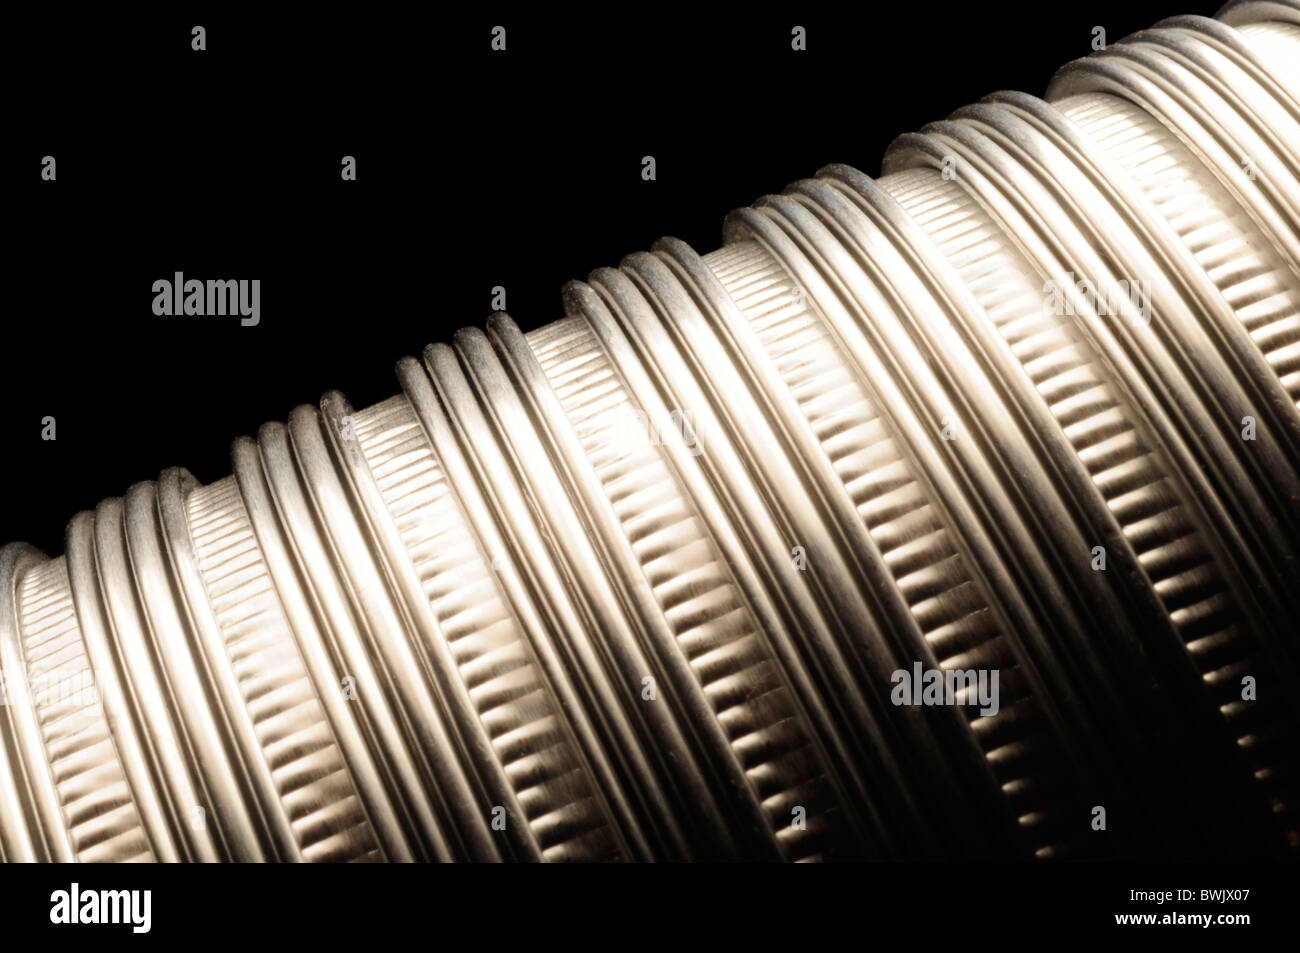 Flexible metallic aluminum vent tubing running diagonally against a black background - Stock Image